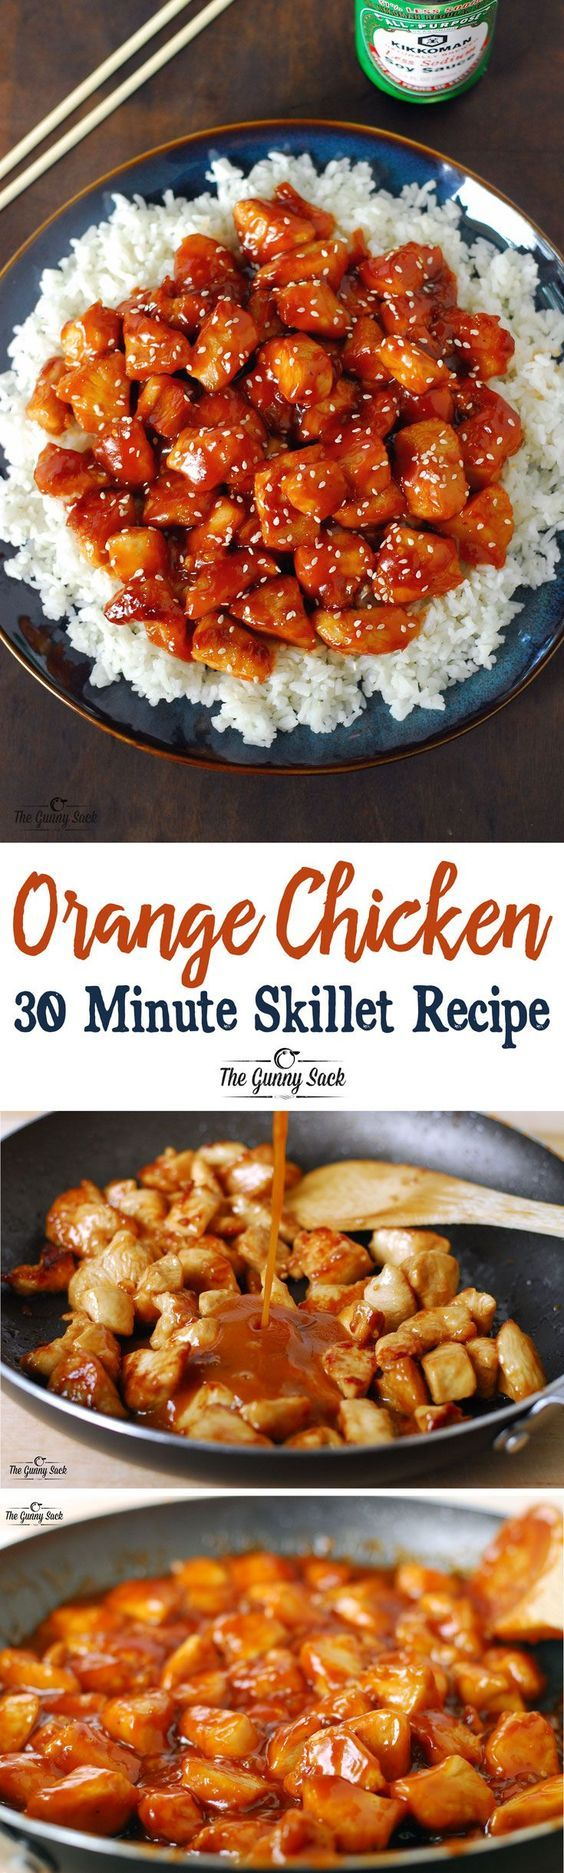 Orange Chicken 30 Minute Skillet Recipe via The Gunny Sack - An easy dinner idea that is family friendly! Homemade is always better than takeout! - The BEST 30 Minute Meals Recipes - Easy, Quick and Delicious Family Friendly Lunch and Dinner Ideas #30minutemeals #30minutedinners #thirtyminutedinners #30minuterecipes #fastrecipes #easyrecipes #quickrecipes #mealprep #simplefamilymeals #simplefamilyrecipes #simplerecipes